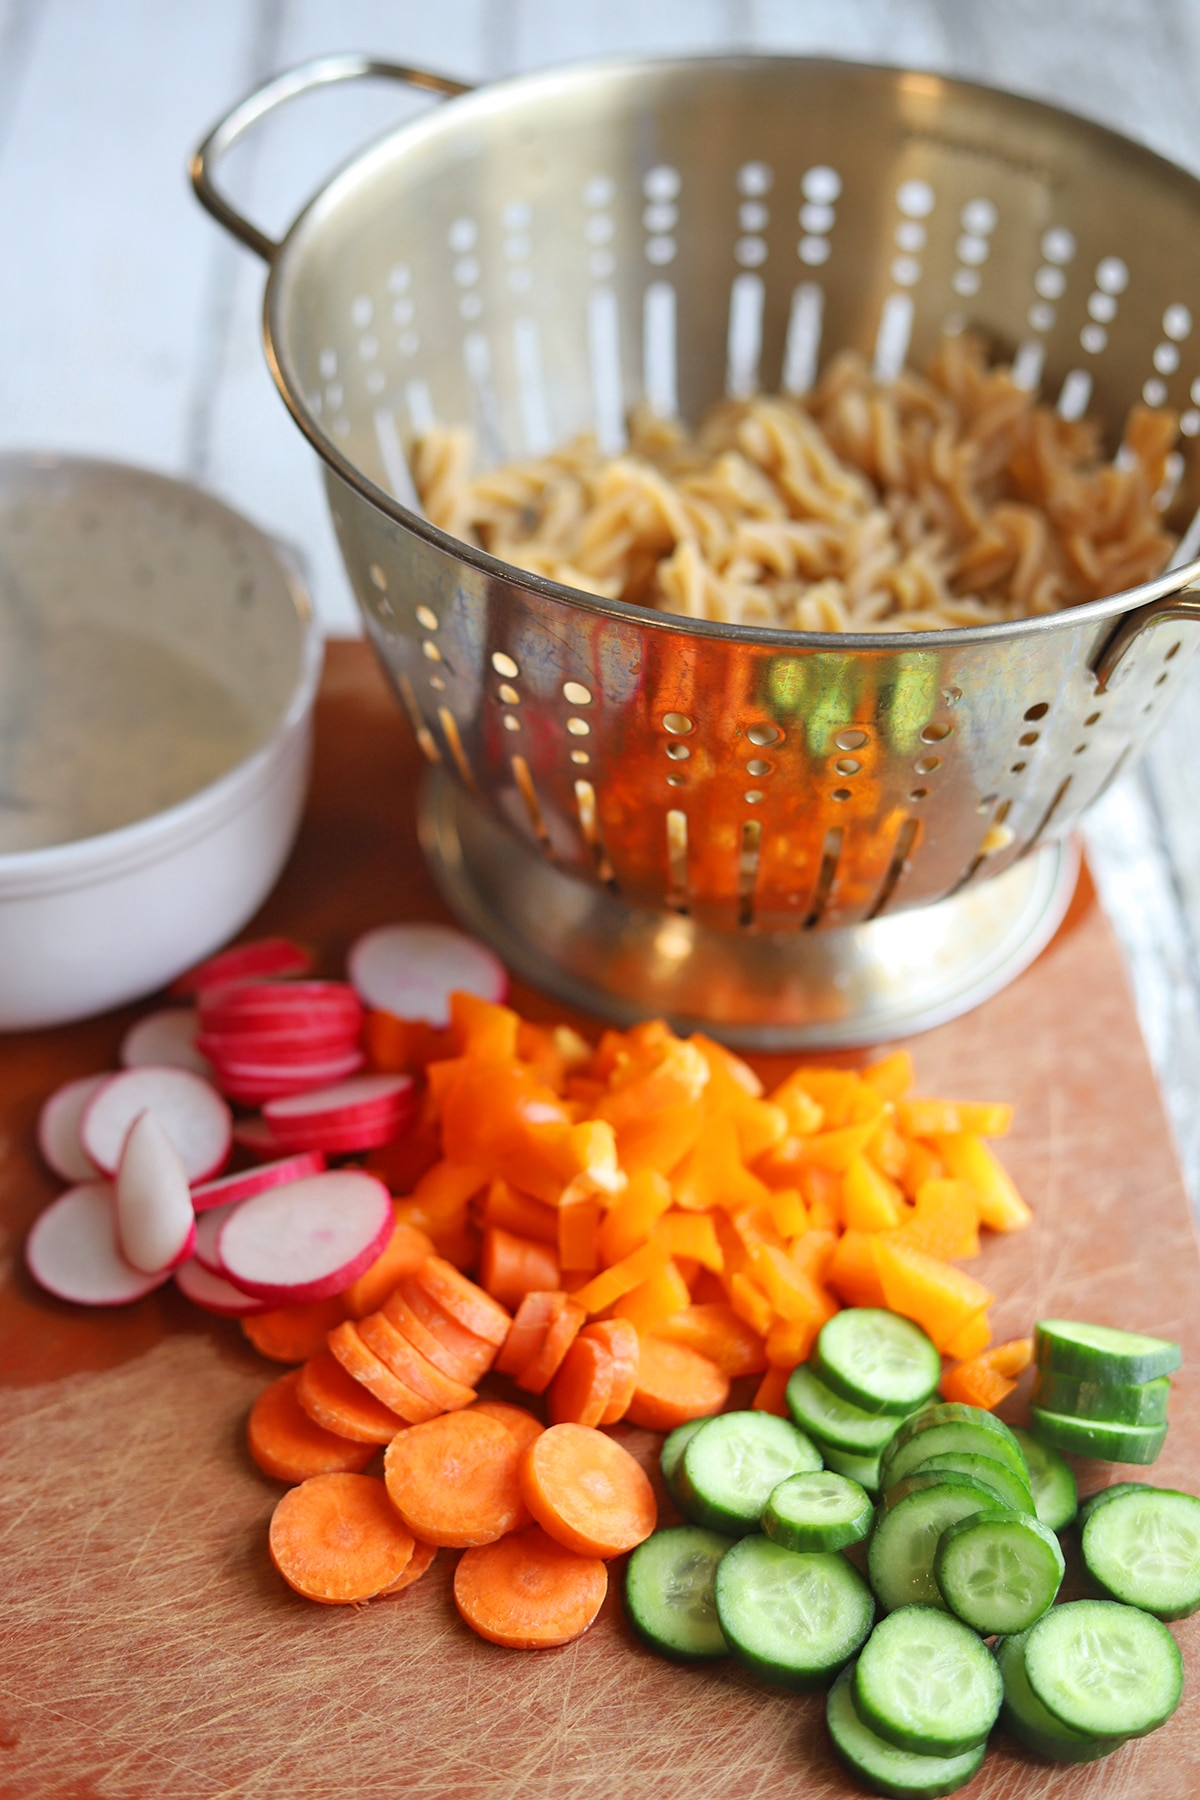 Sliced vegetables on table by mayo dressing and pasta in colander.